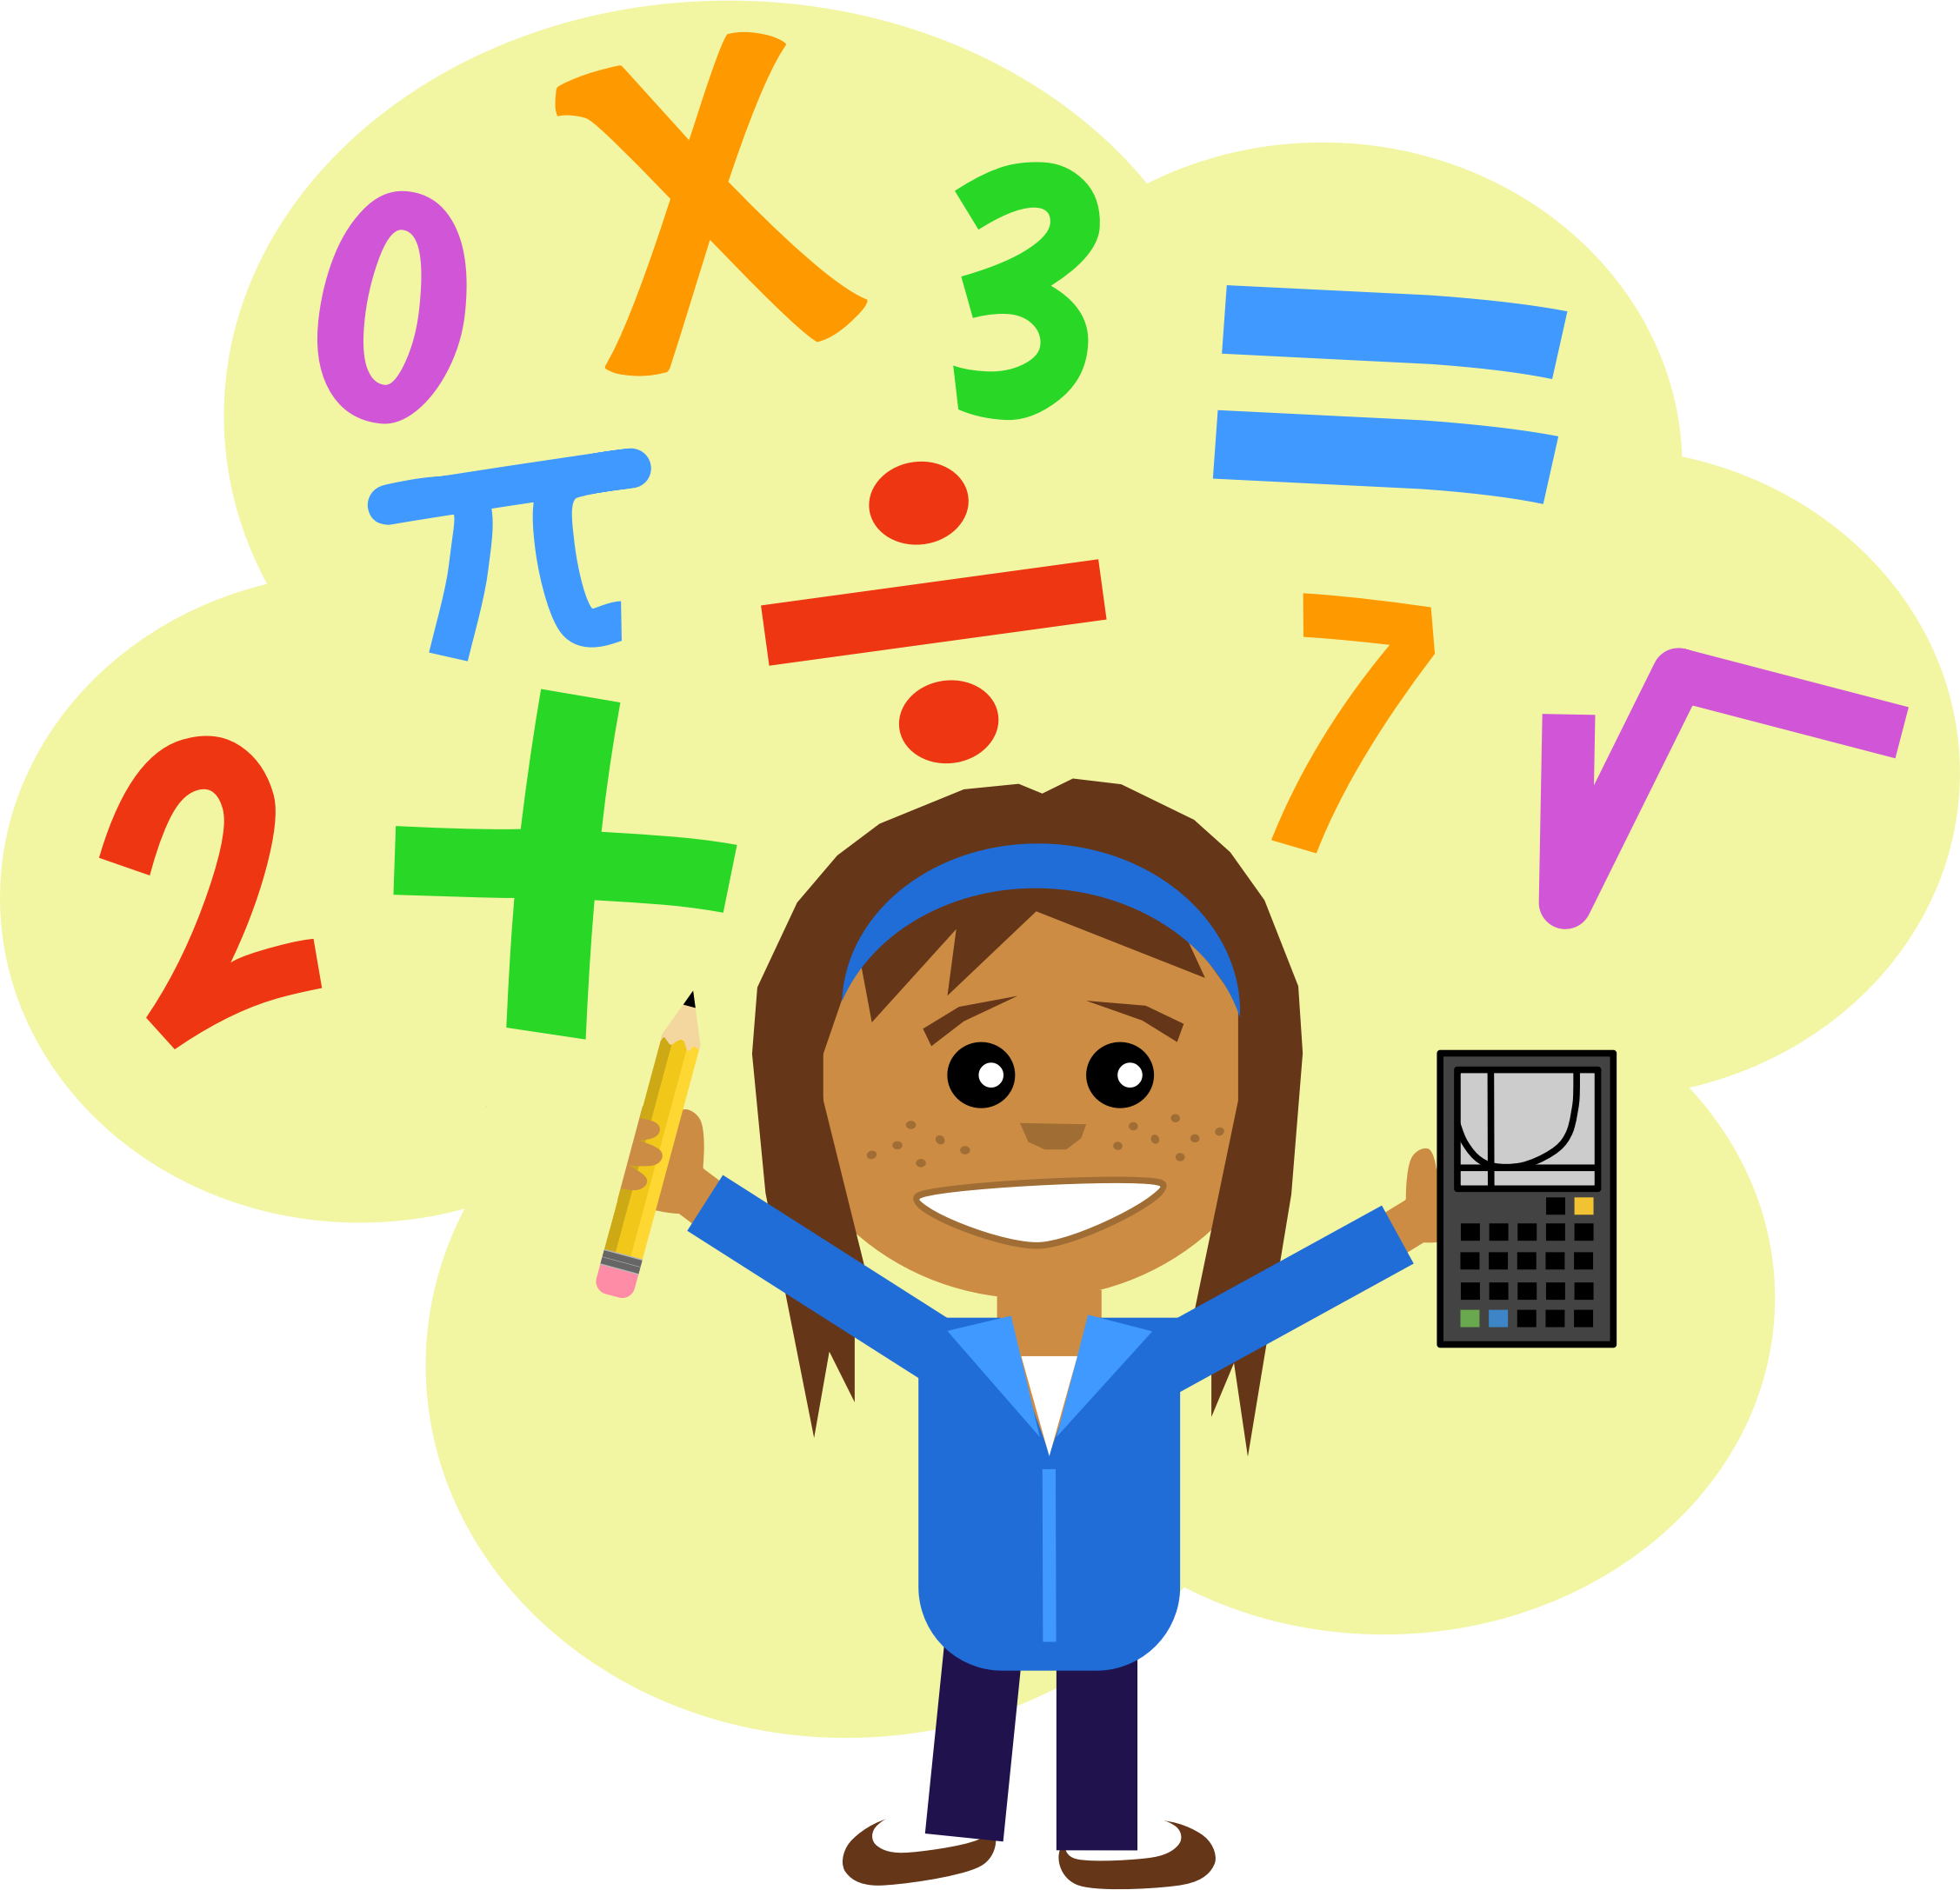 collection of high. Cute math book clipart images